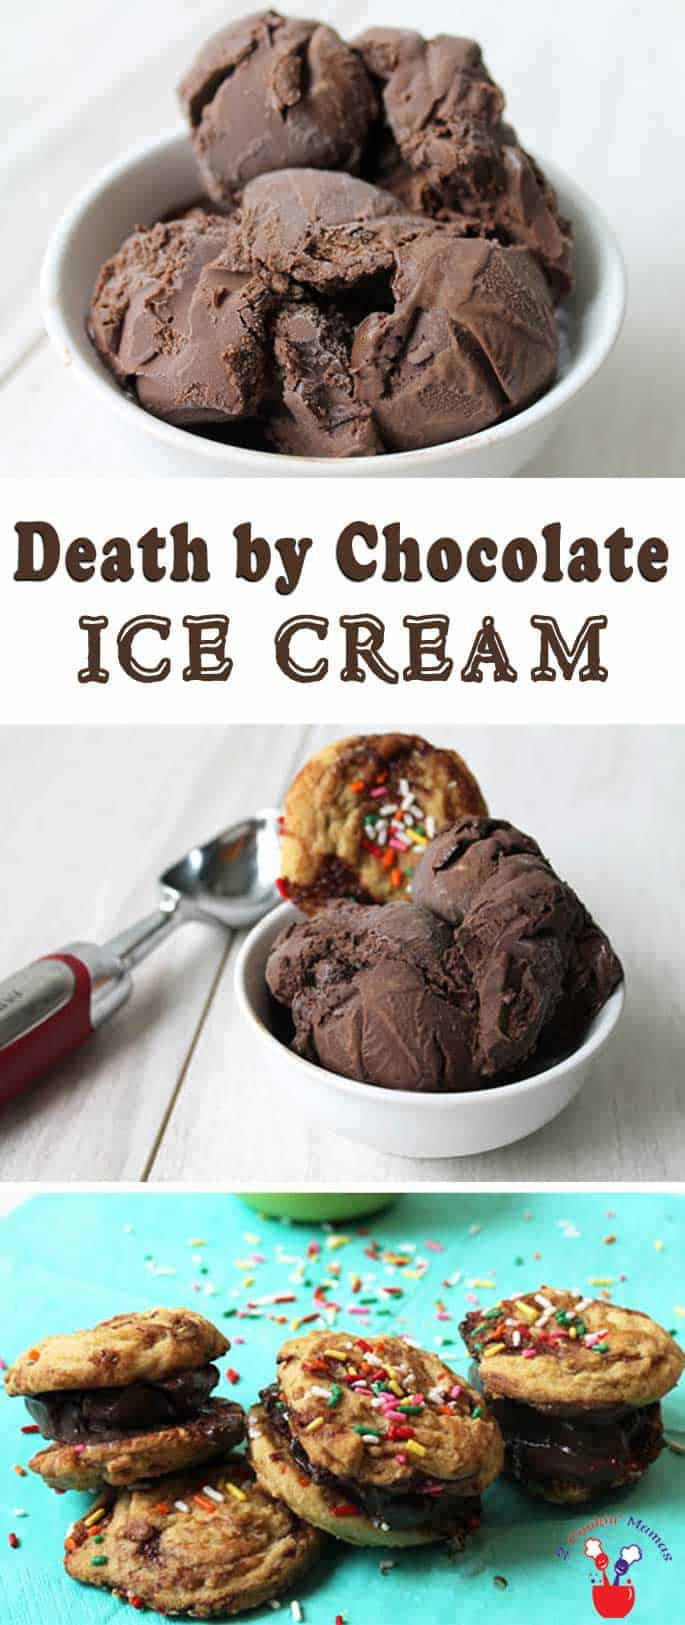 Death by Chocolate Ice Cream | 2 Cookin Mamas Calling all chocolate lovers! This decadent homemade chocolate ice cream will have you in chocolate heaven. Its rich, creamy and over-the-top delicious!